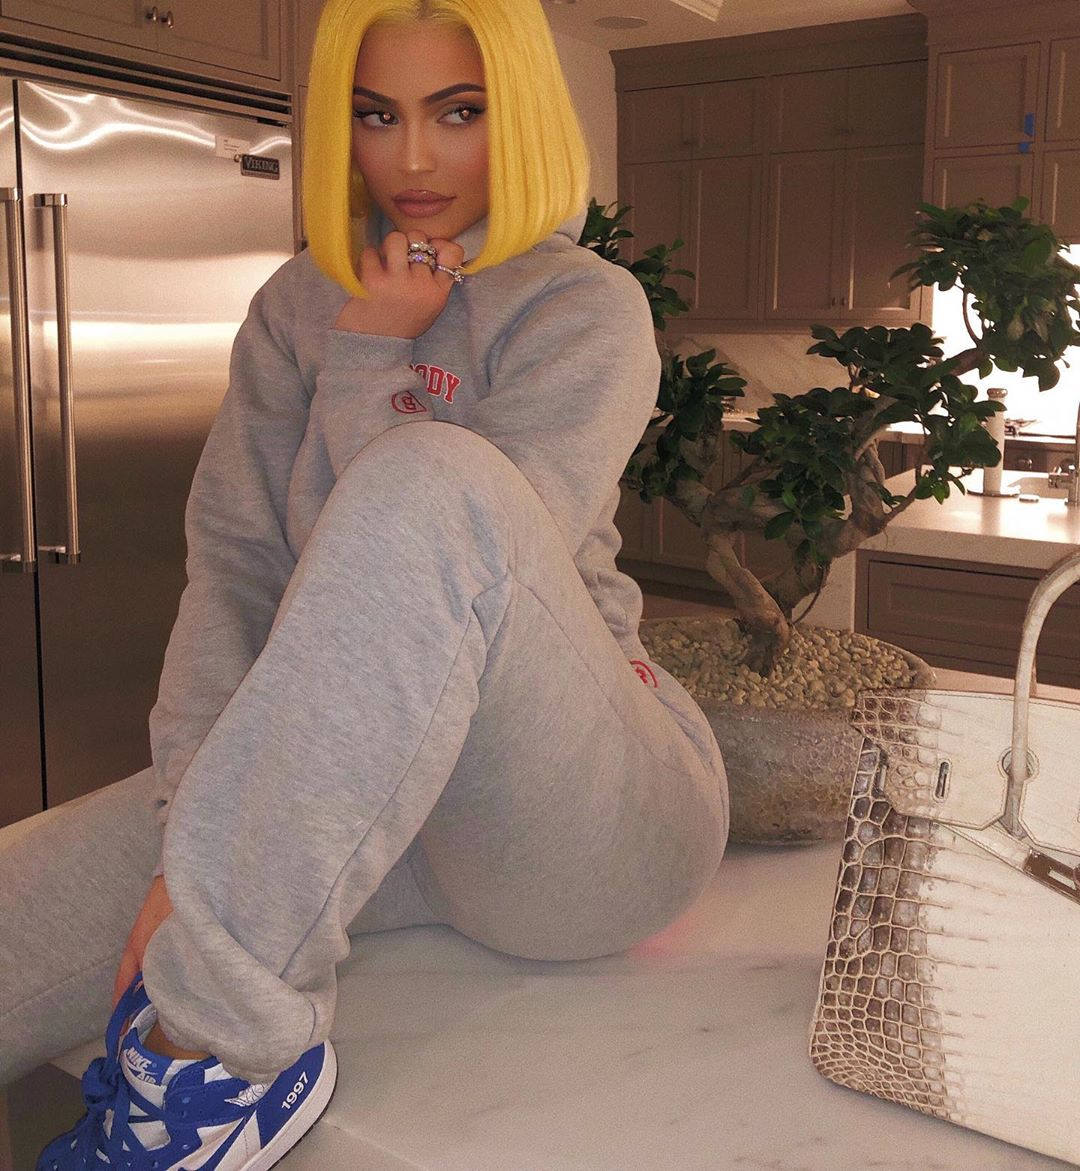 Kylie Jenner rocking pattern blue white lace-up sneakers